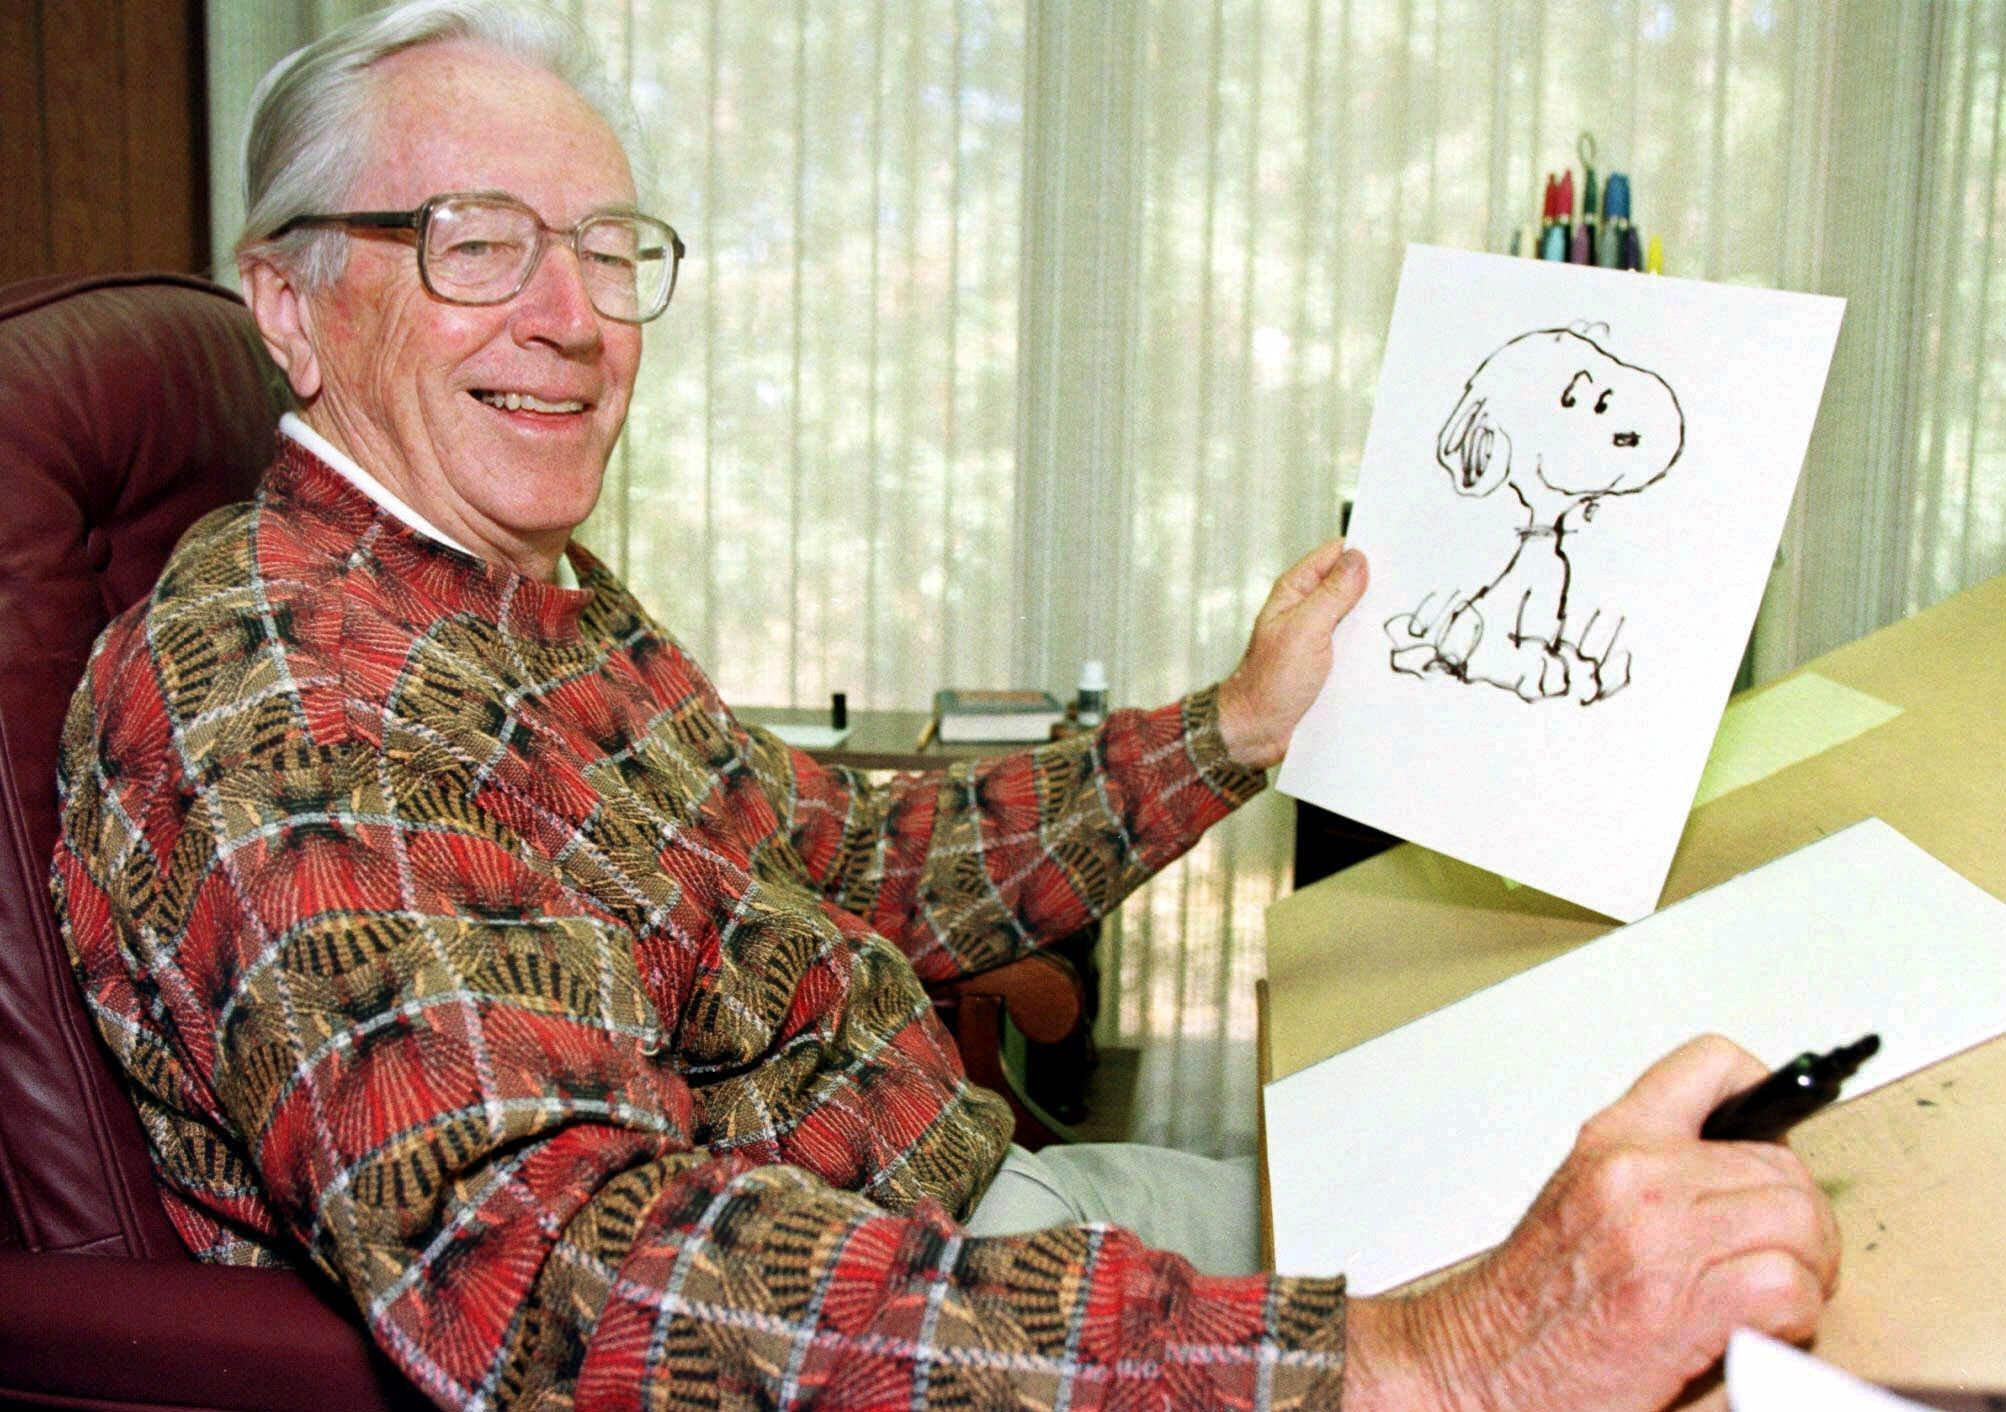 http://images3.wikia.nocookie.net/__cb20110825213703/peanuts/images/7/70/CharlesSchulz.jpg